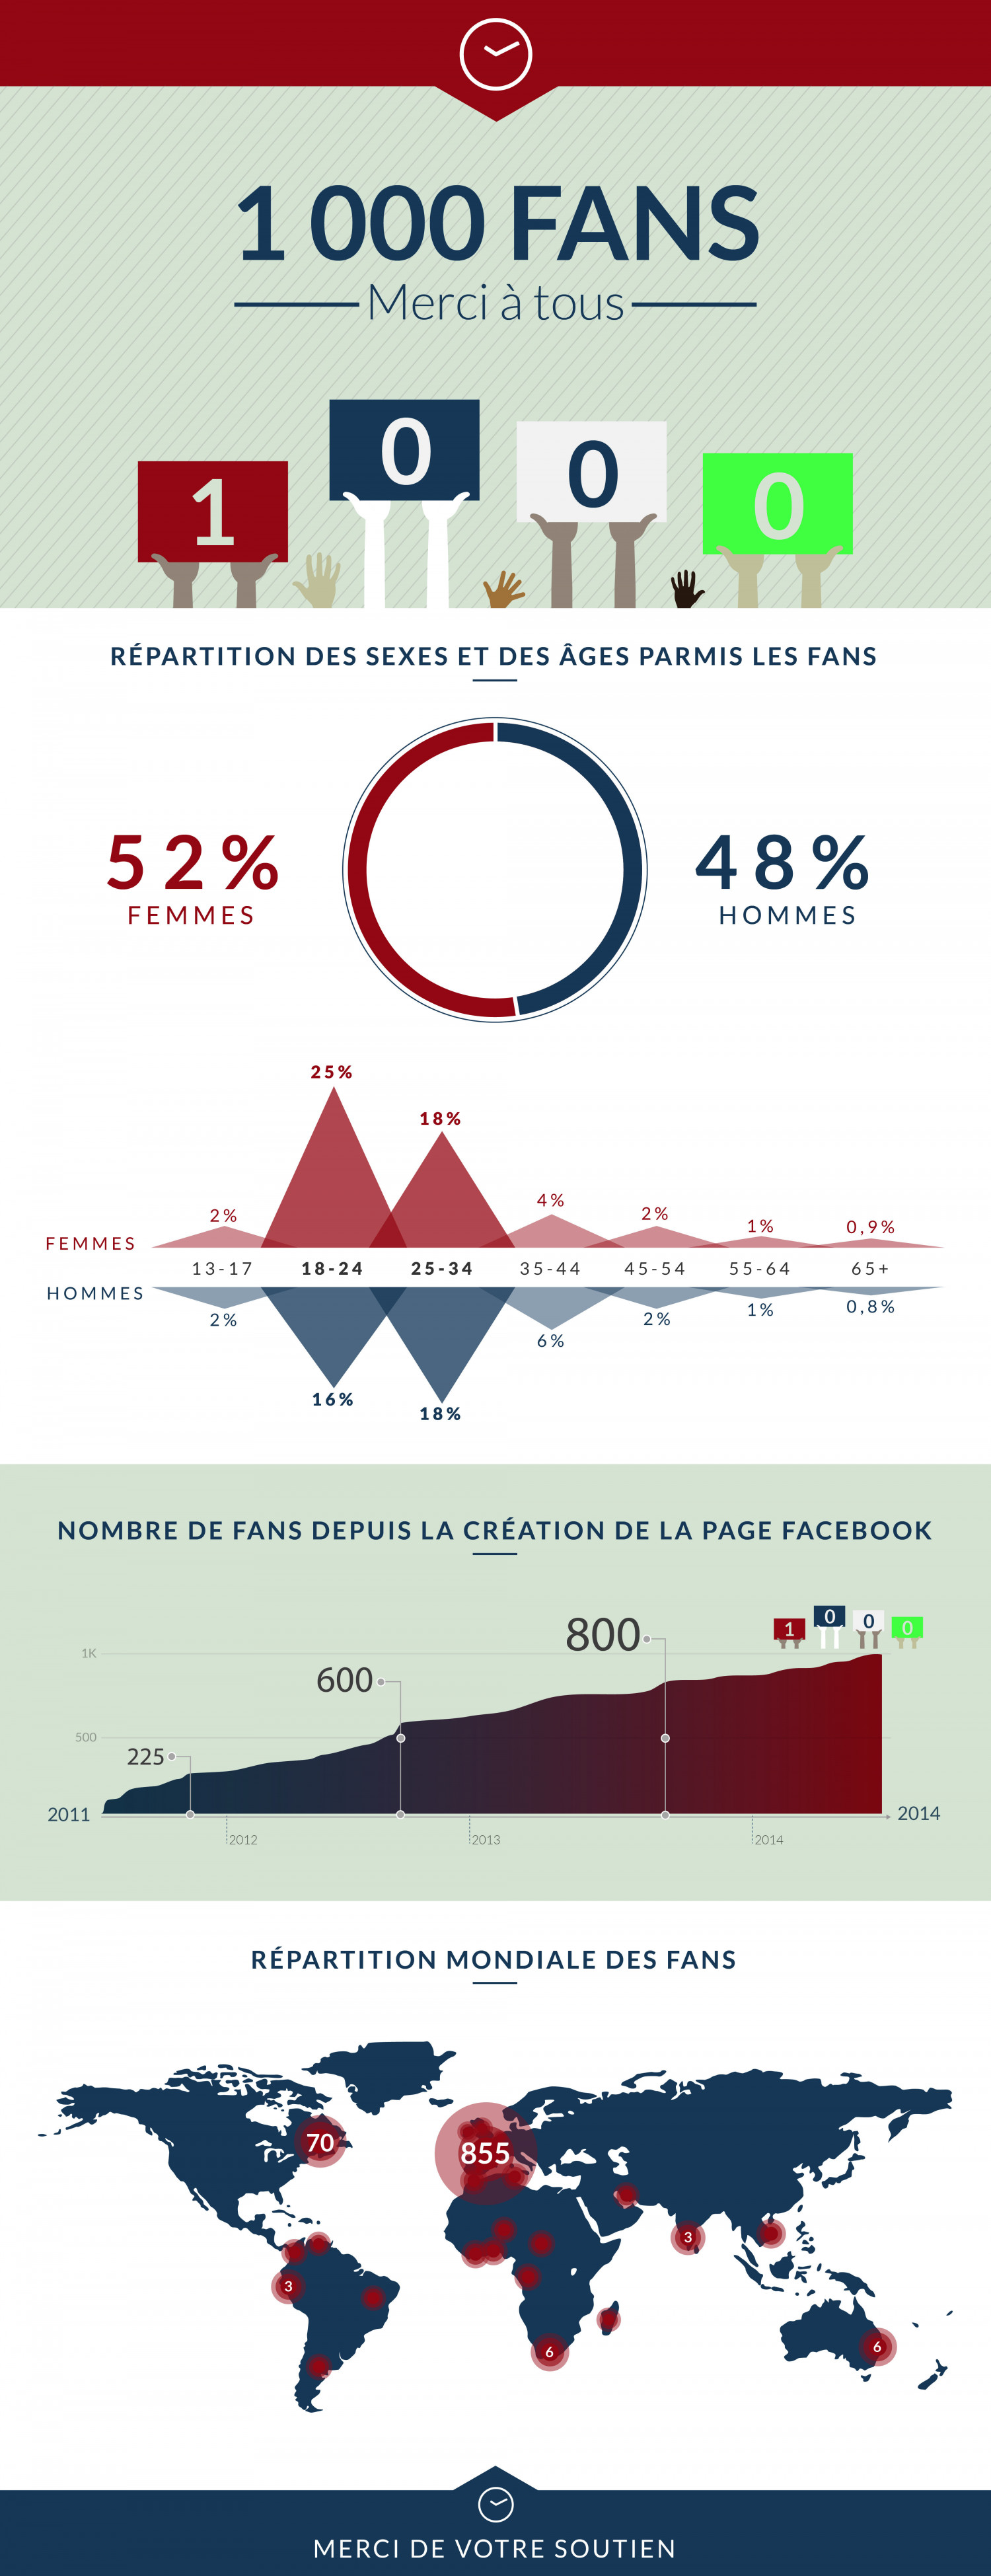 1000 fans : Merci ! Infographic